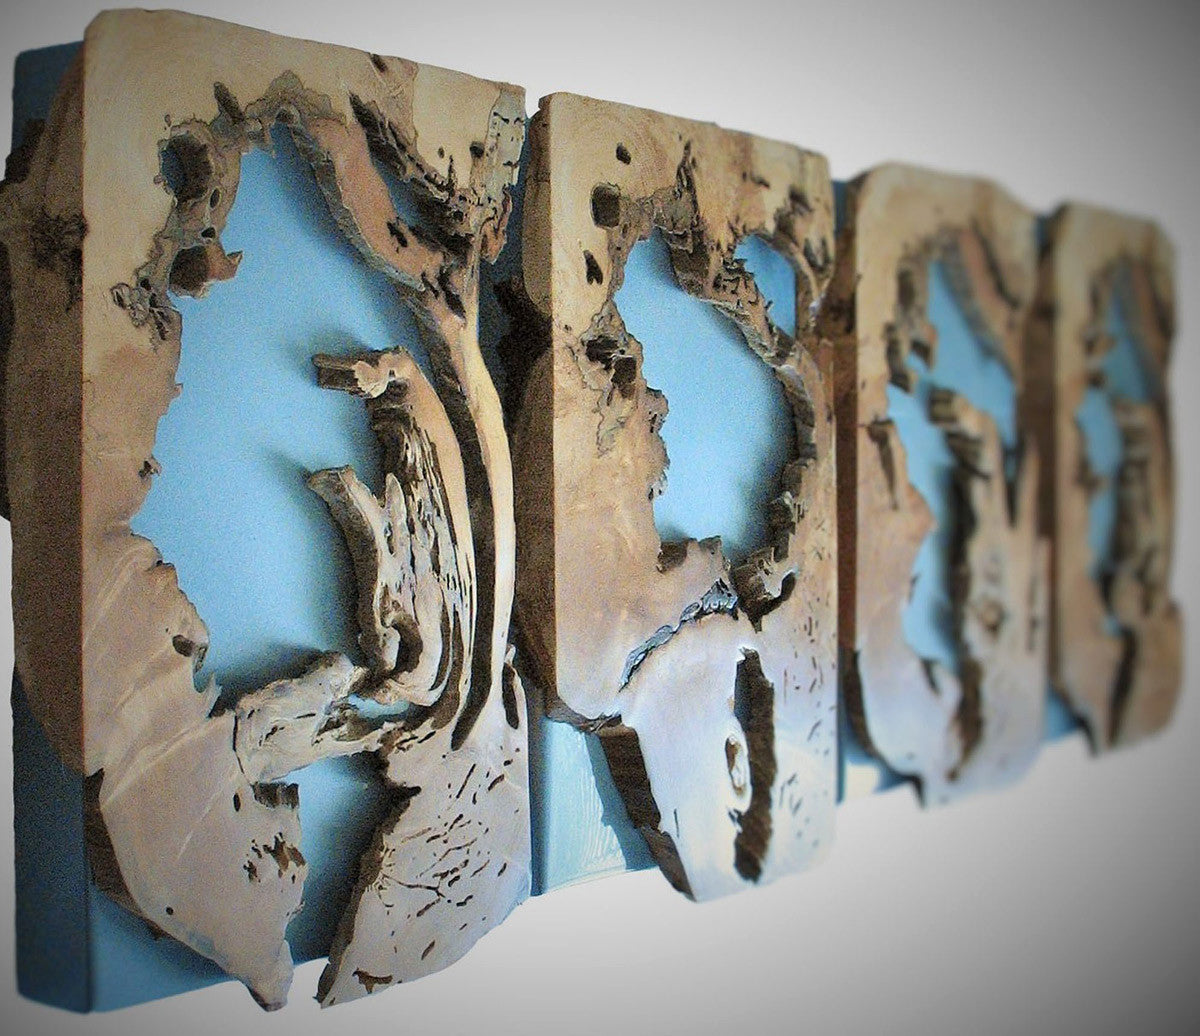 Decomposition on Blue / 13.5 x 19.5 x 3 each / ash and painted steel